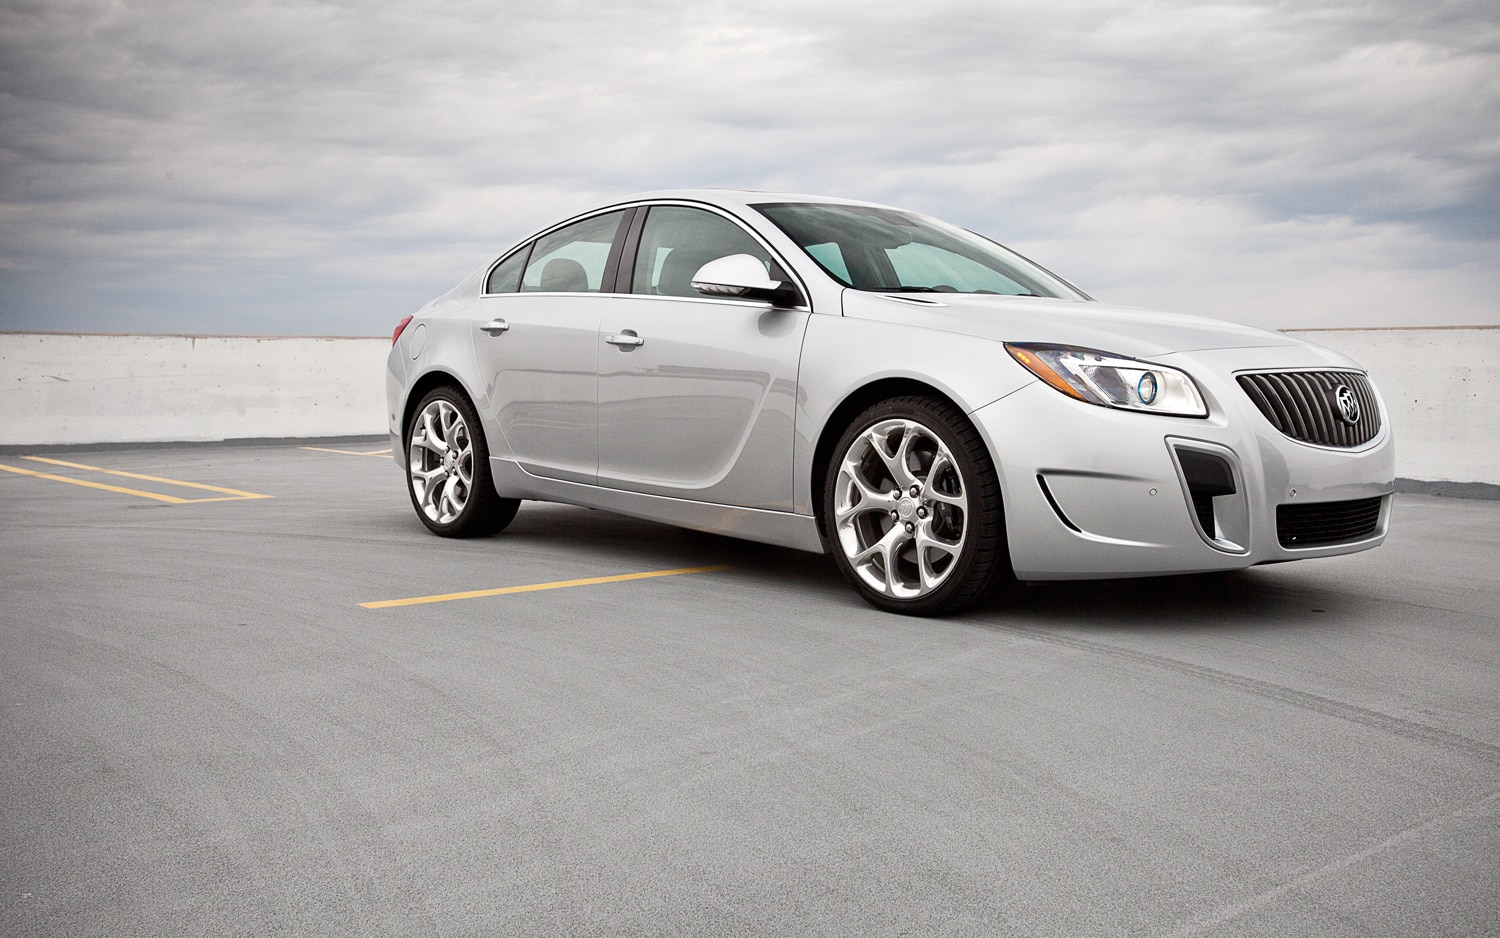 Buick Regal: Different Size Tires and Wheels